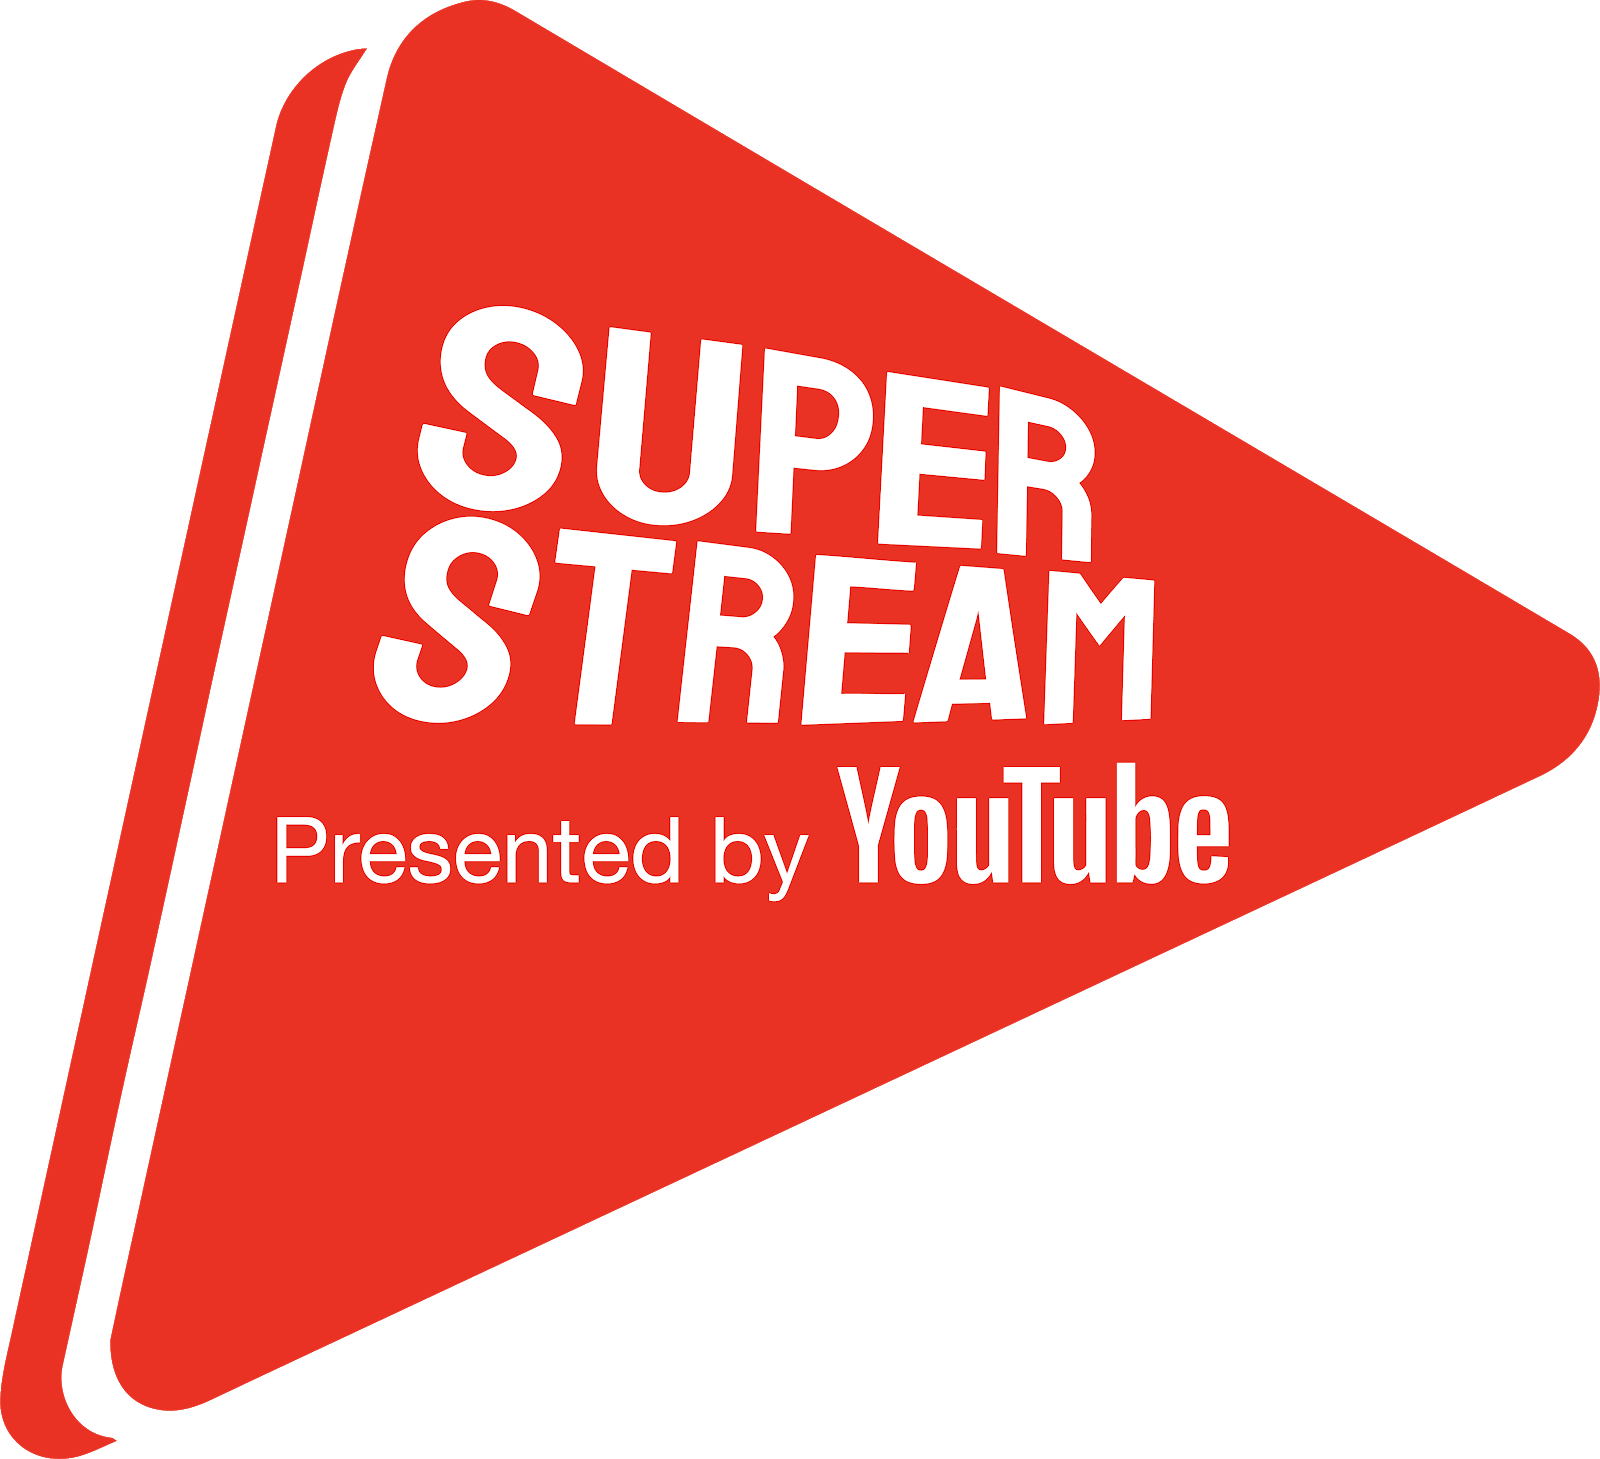 YouTube launches Super Stream to provide free access to all-time local TV, movie, and sports favorites until September 26